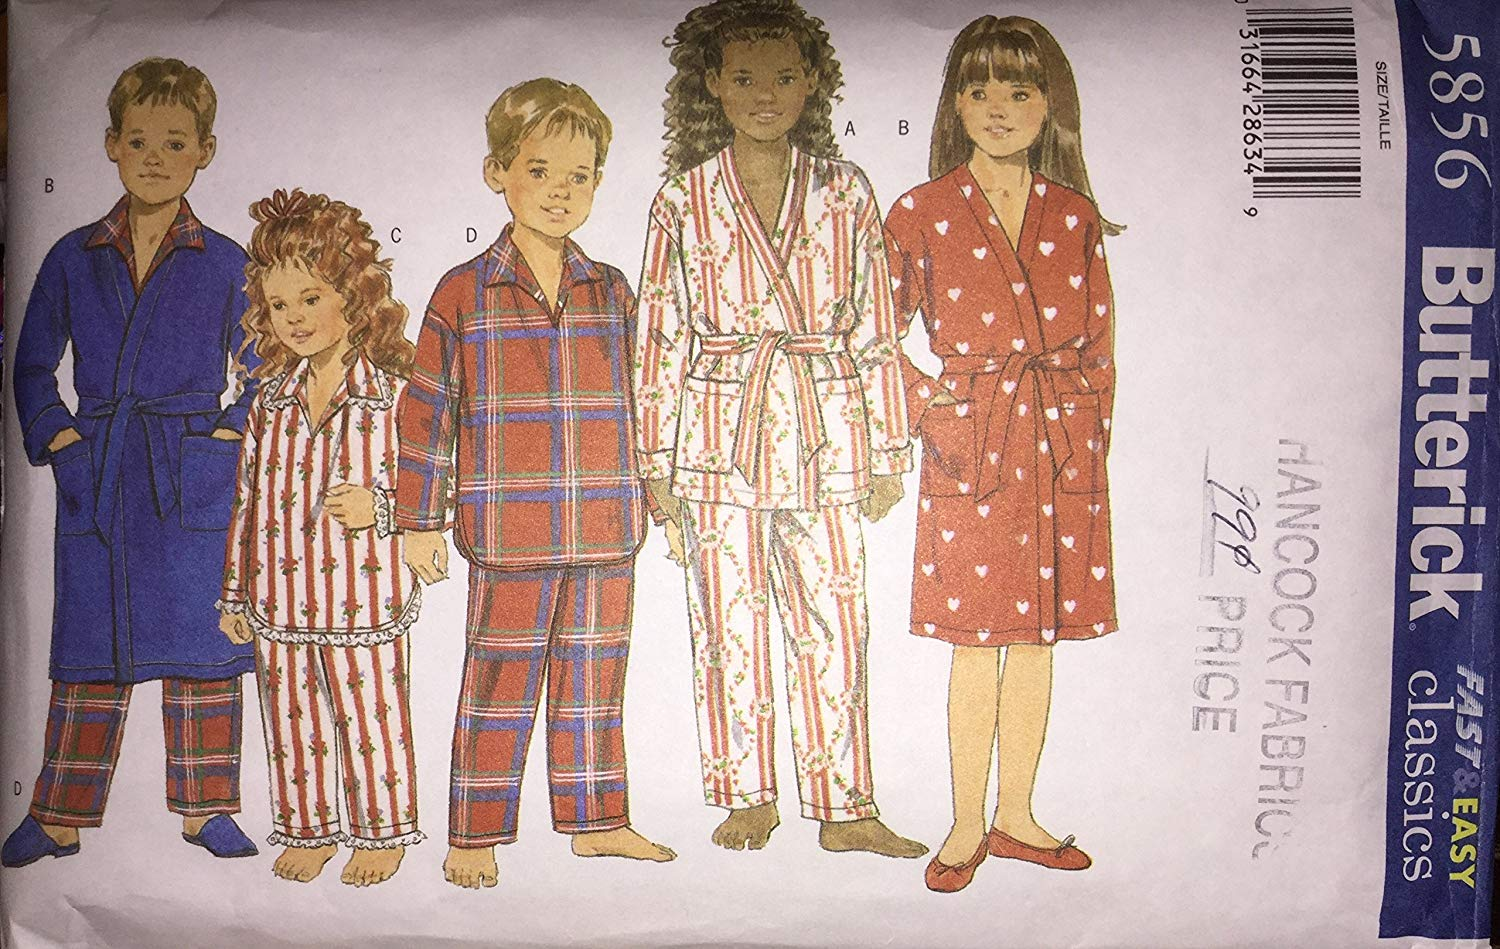 CHILDRENS/BOYS/GIRLS ROBE, BELT, TOP & PANTS SIZE 4-5, 6-7, 8-10, 12-14 BUTTERICK SEWING PATTERN #5856 BUTTERICK FAST & EASY CLASSICS